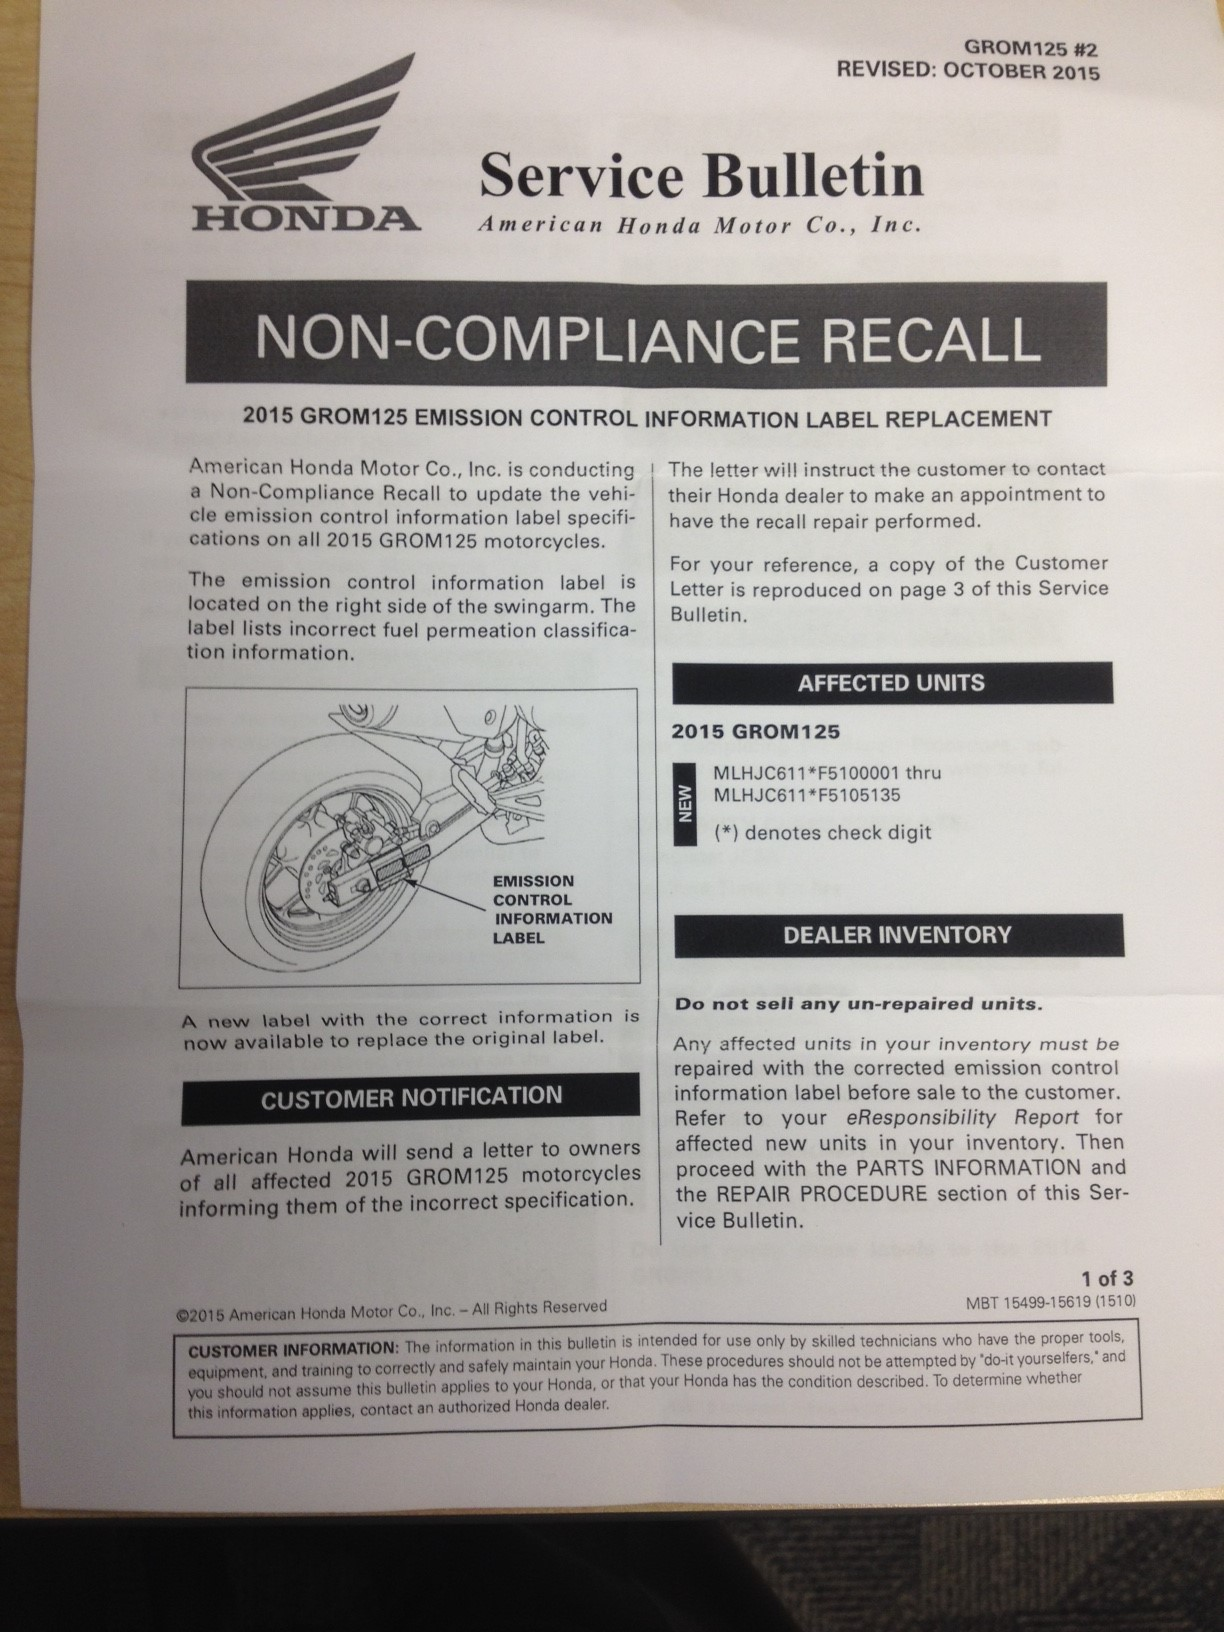 Fuel pump replacement recall and my encounter with Honda service